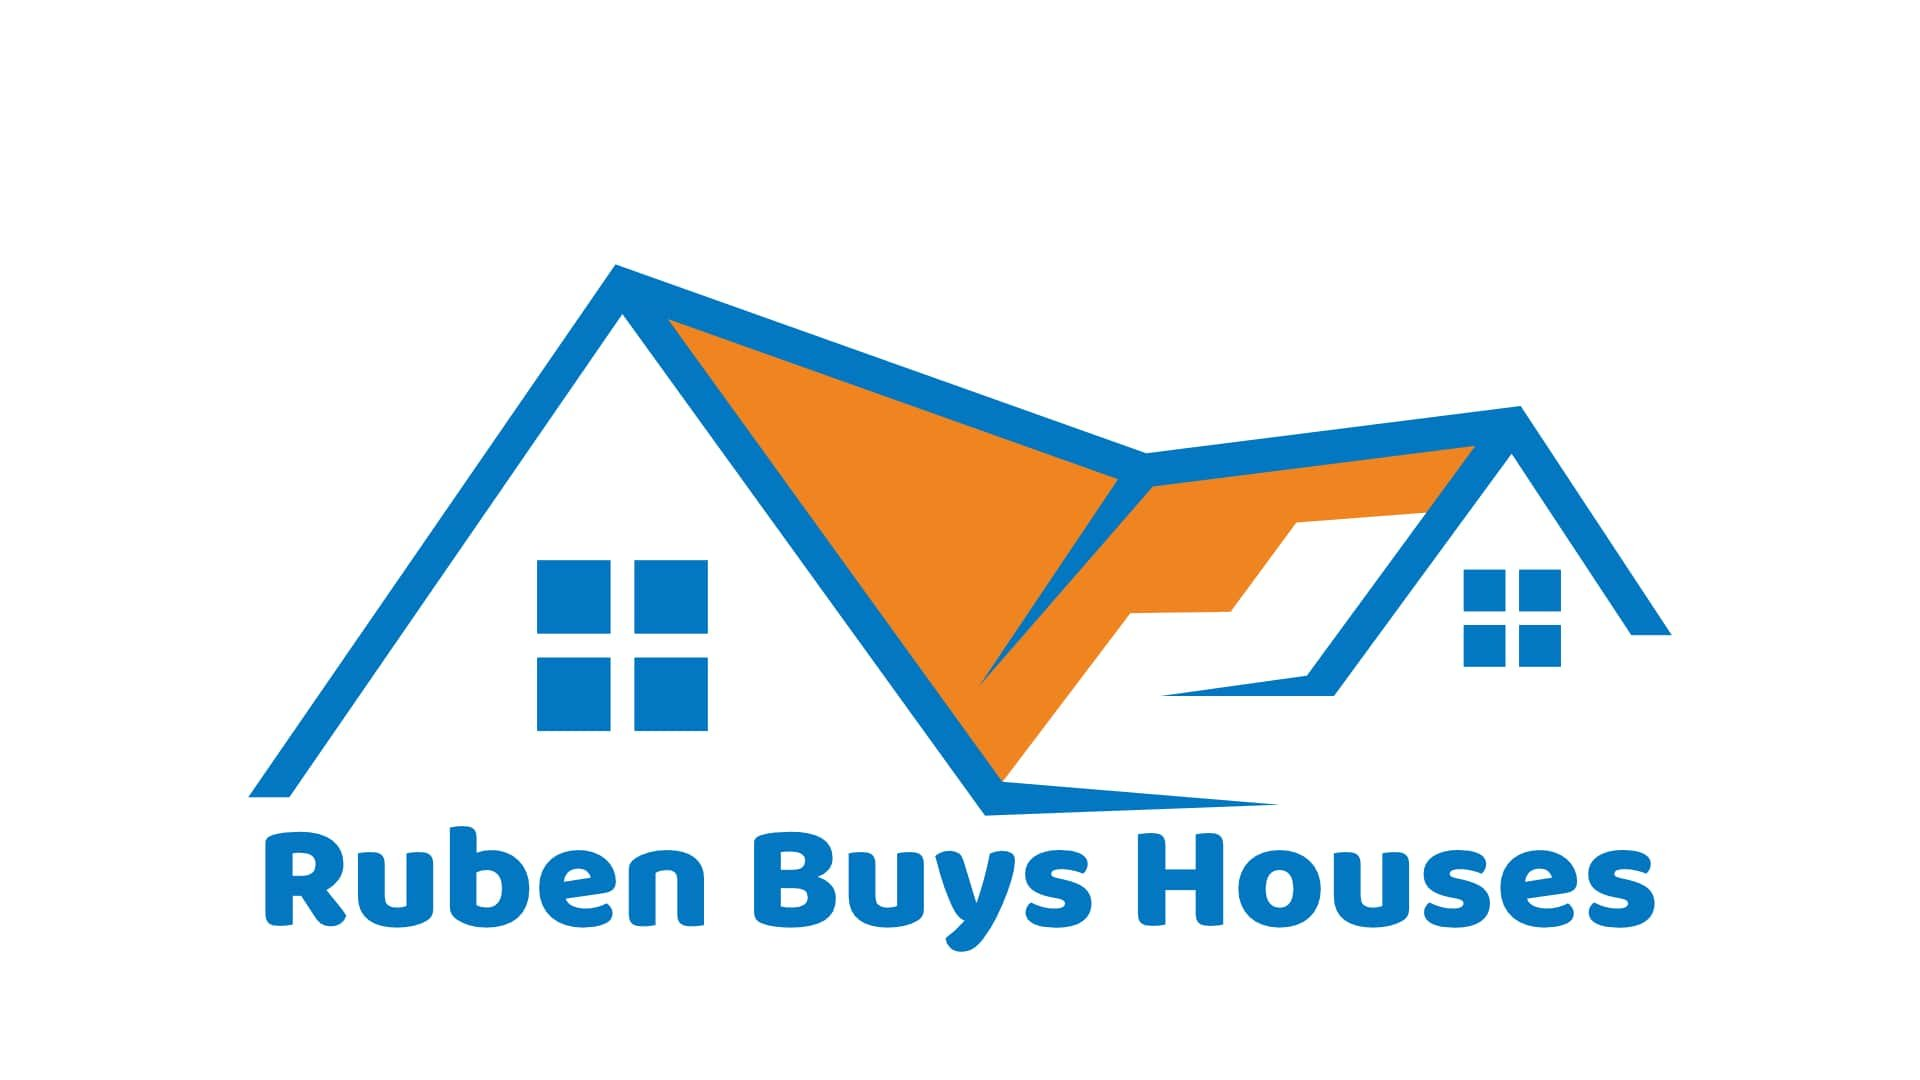 Ruben Buys Houses LLC is a Top Real Estate Solutions Provider Recently Open for Business in the State of Florida